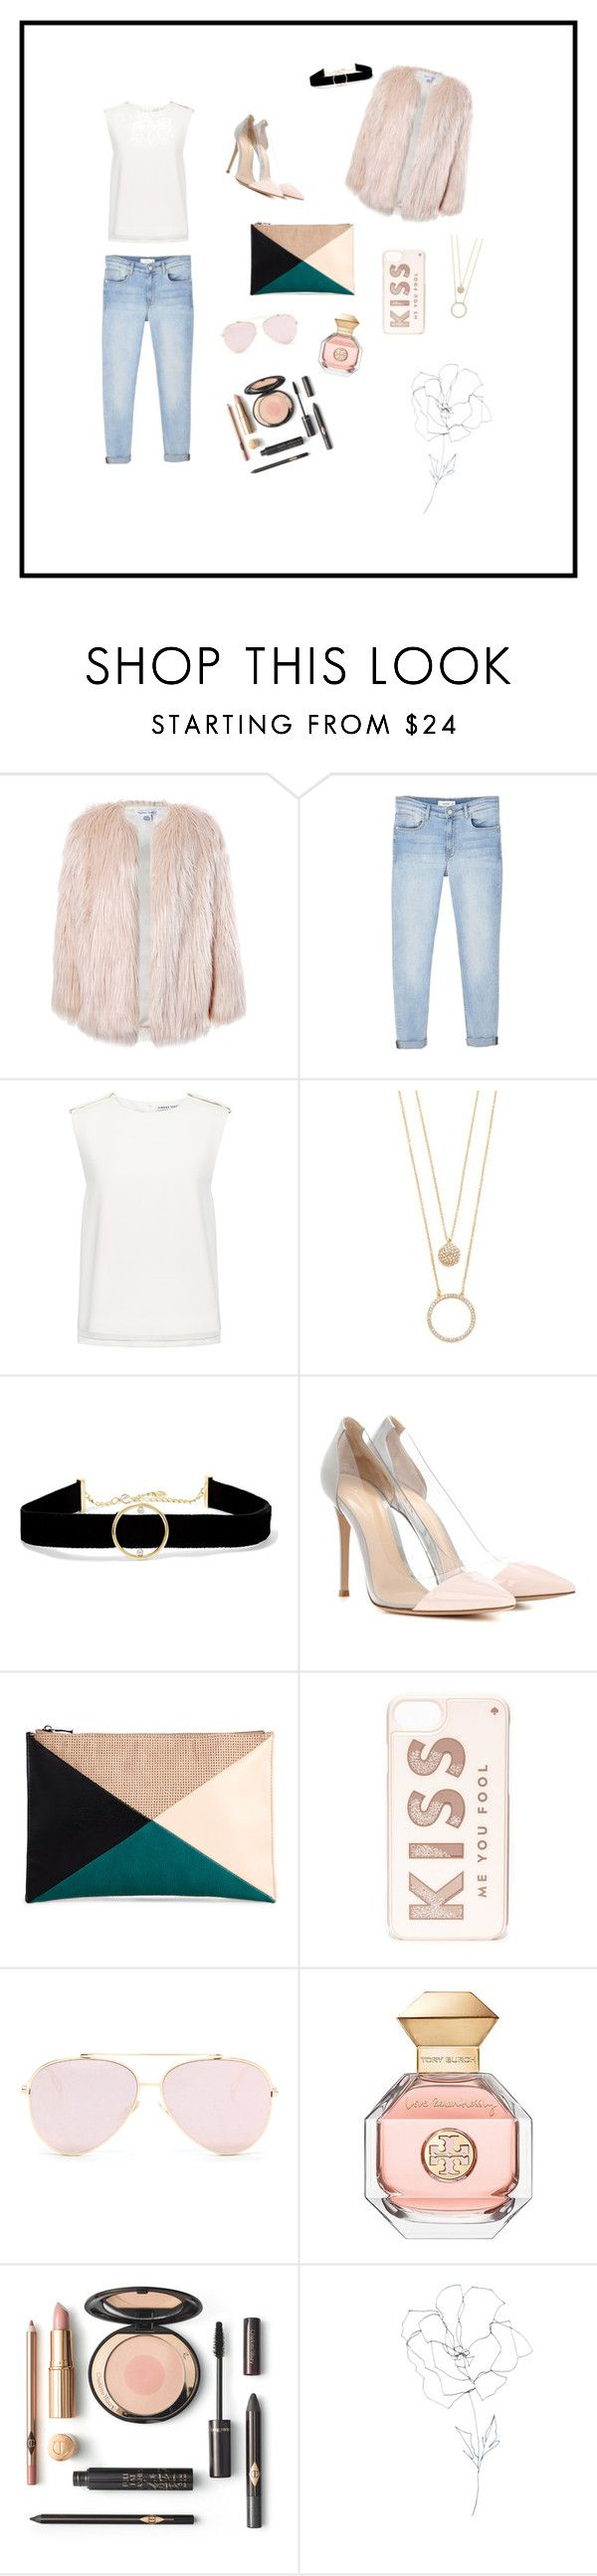 """""""x5"""" by avrlvgn ❤ liked on Polyvore featuring Sans Souci, MANGO, Finders Keepers, Kate Spade, Anissa Kermiche, Gianvito Rossi, Sole Society, Tory Burch and Blume"""